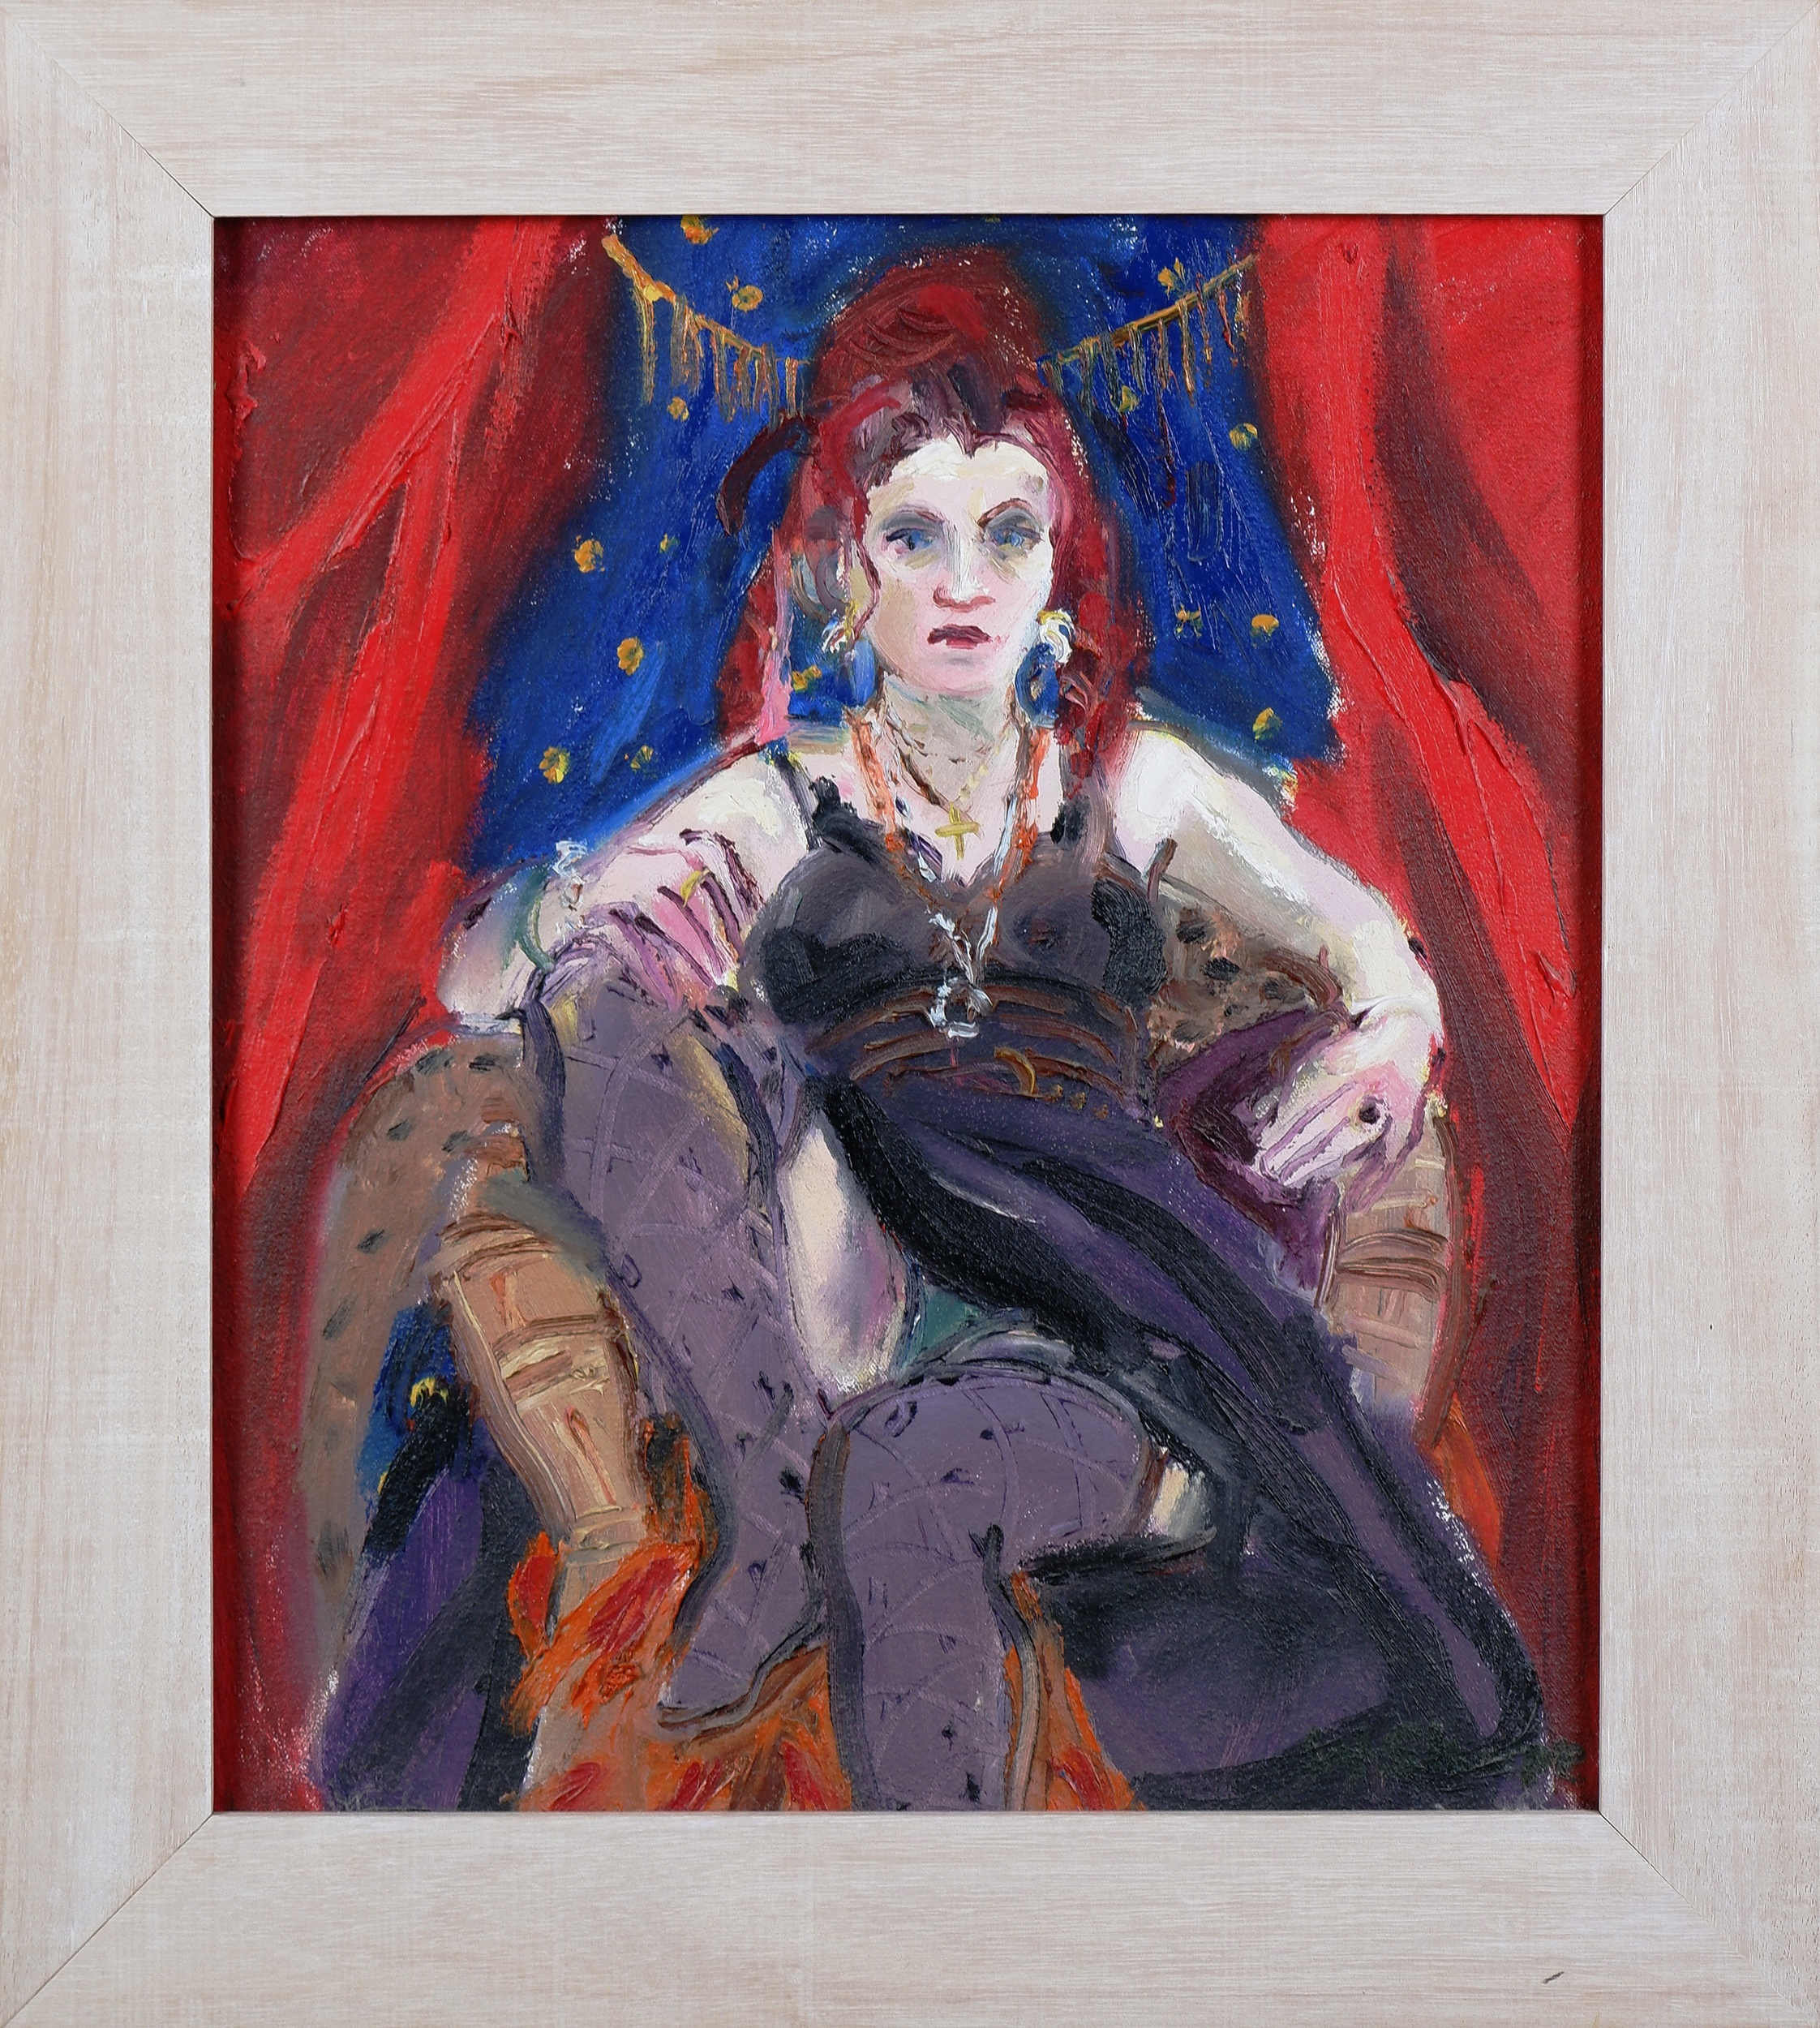 'Wendy Sharpe (born 1960), Ina with Red and Blue, Oil on Canvas'